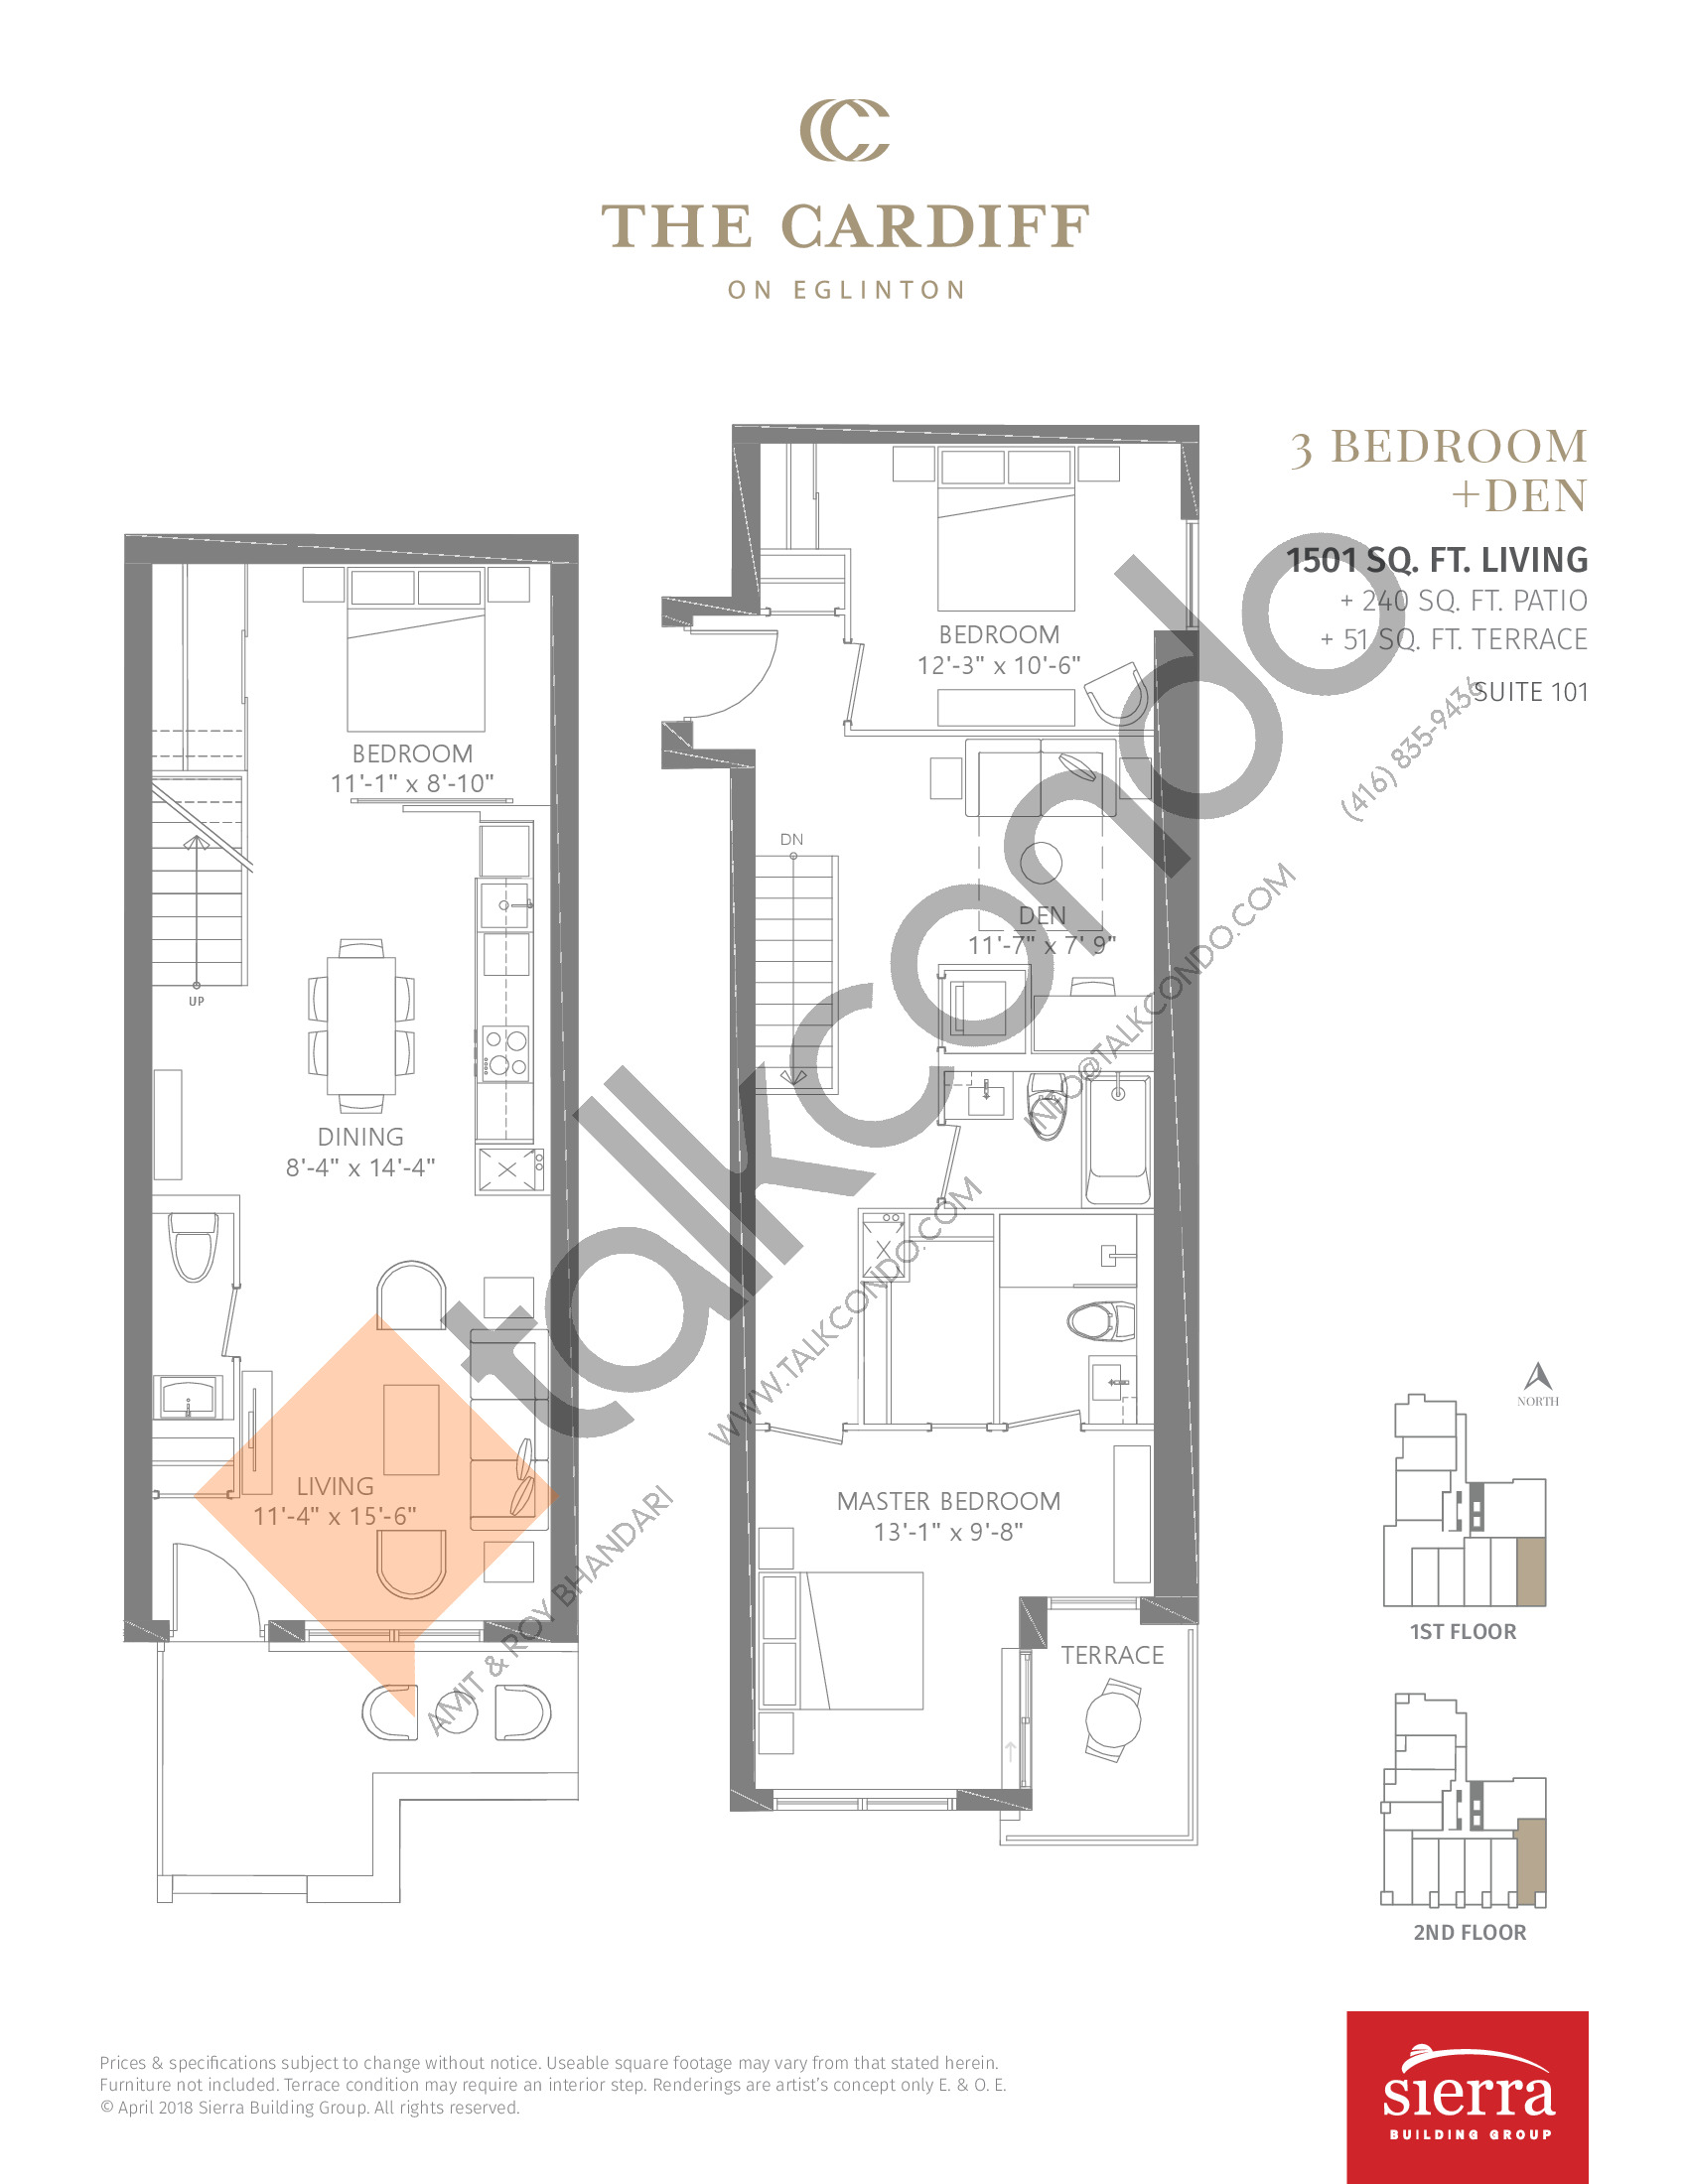 Suite 101 Floor Plan at The Cardiff Condos on Eglinton - 1501 sq.ft